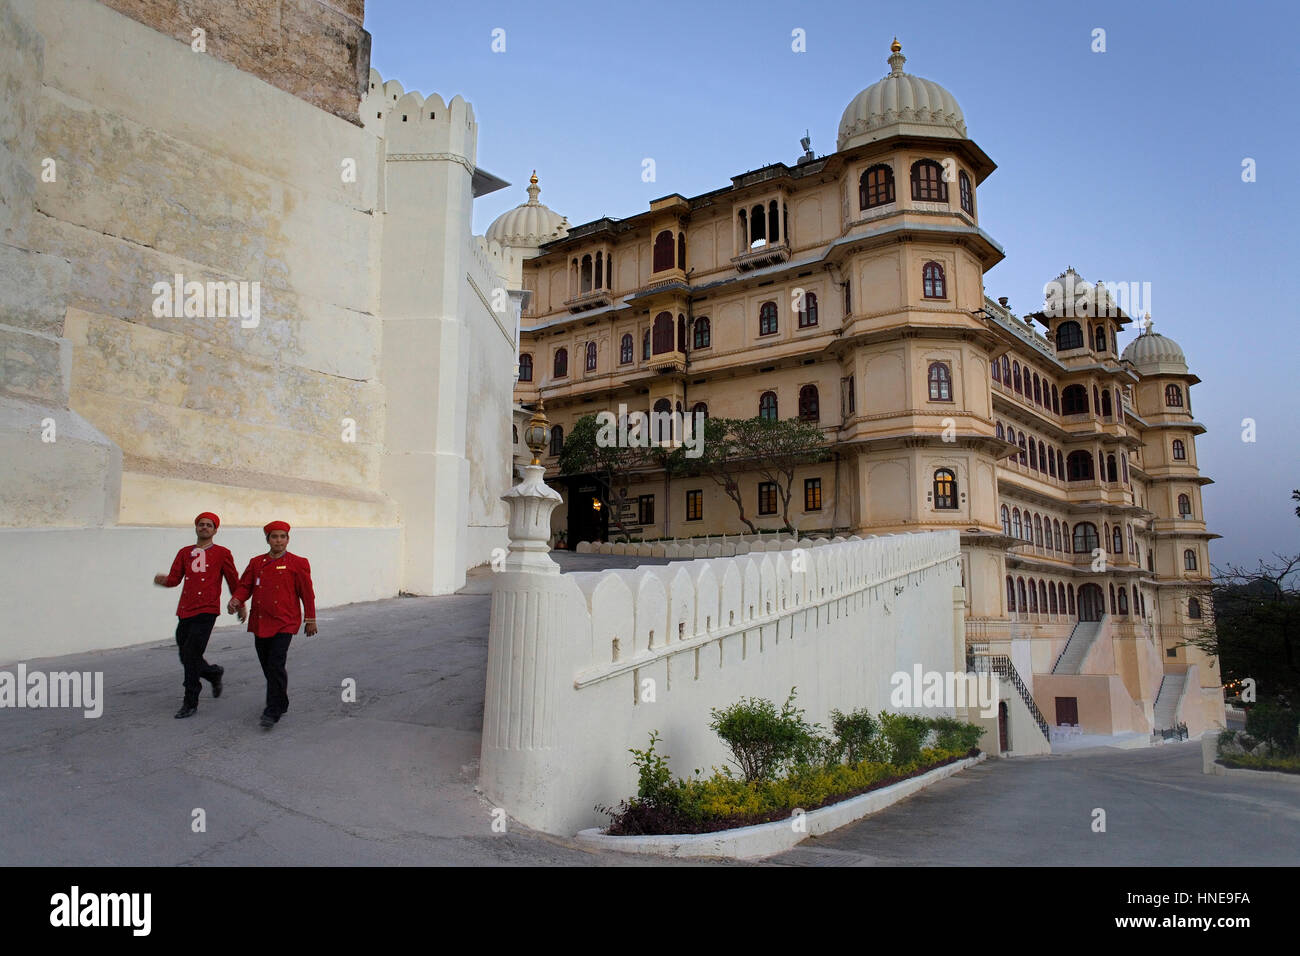 City Palace,bellboys of City Palace hotel,Udaipur, Rajasthan, india - Stock Image